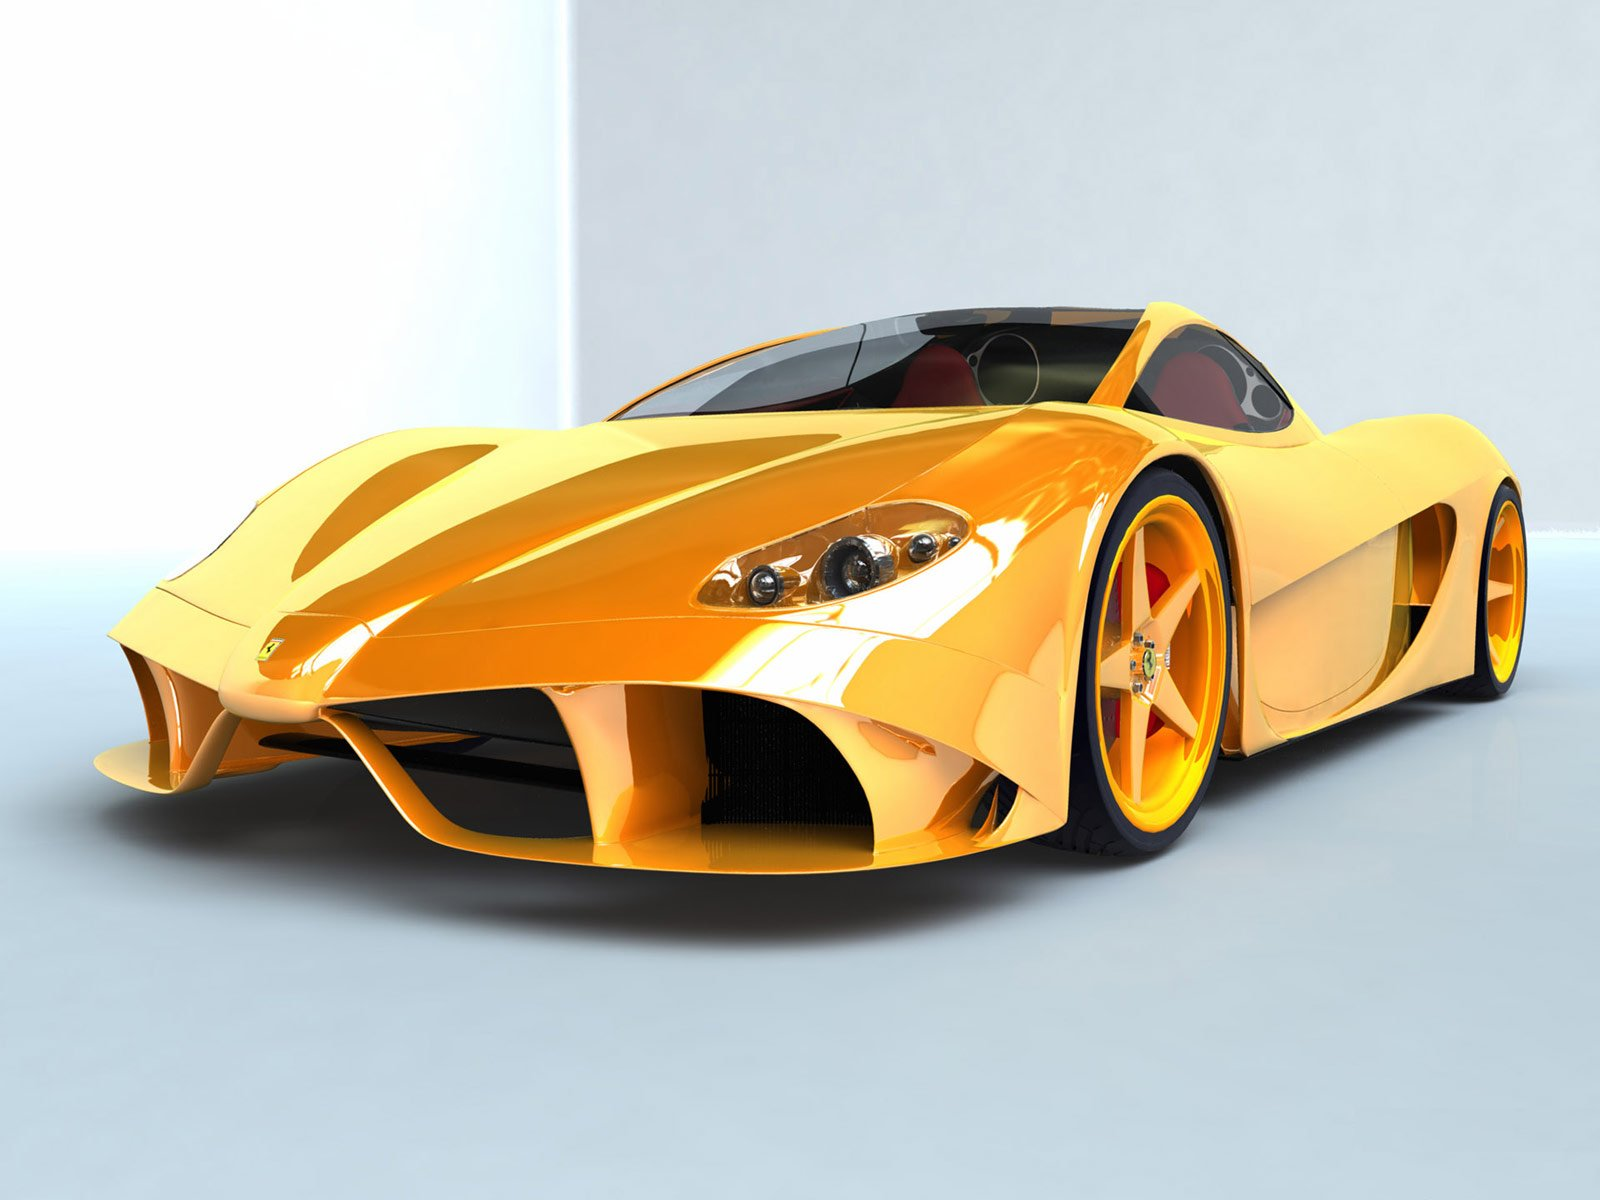 modified sports cars wallpapers Cool Car Wallpapers 1600x1200